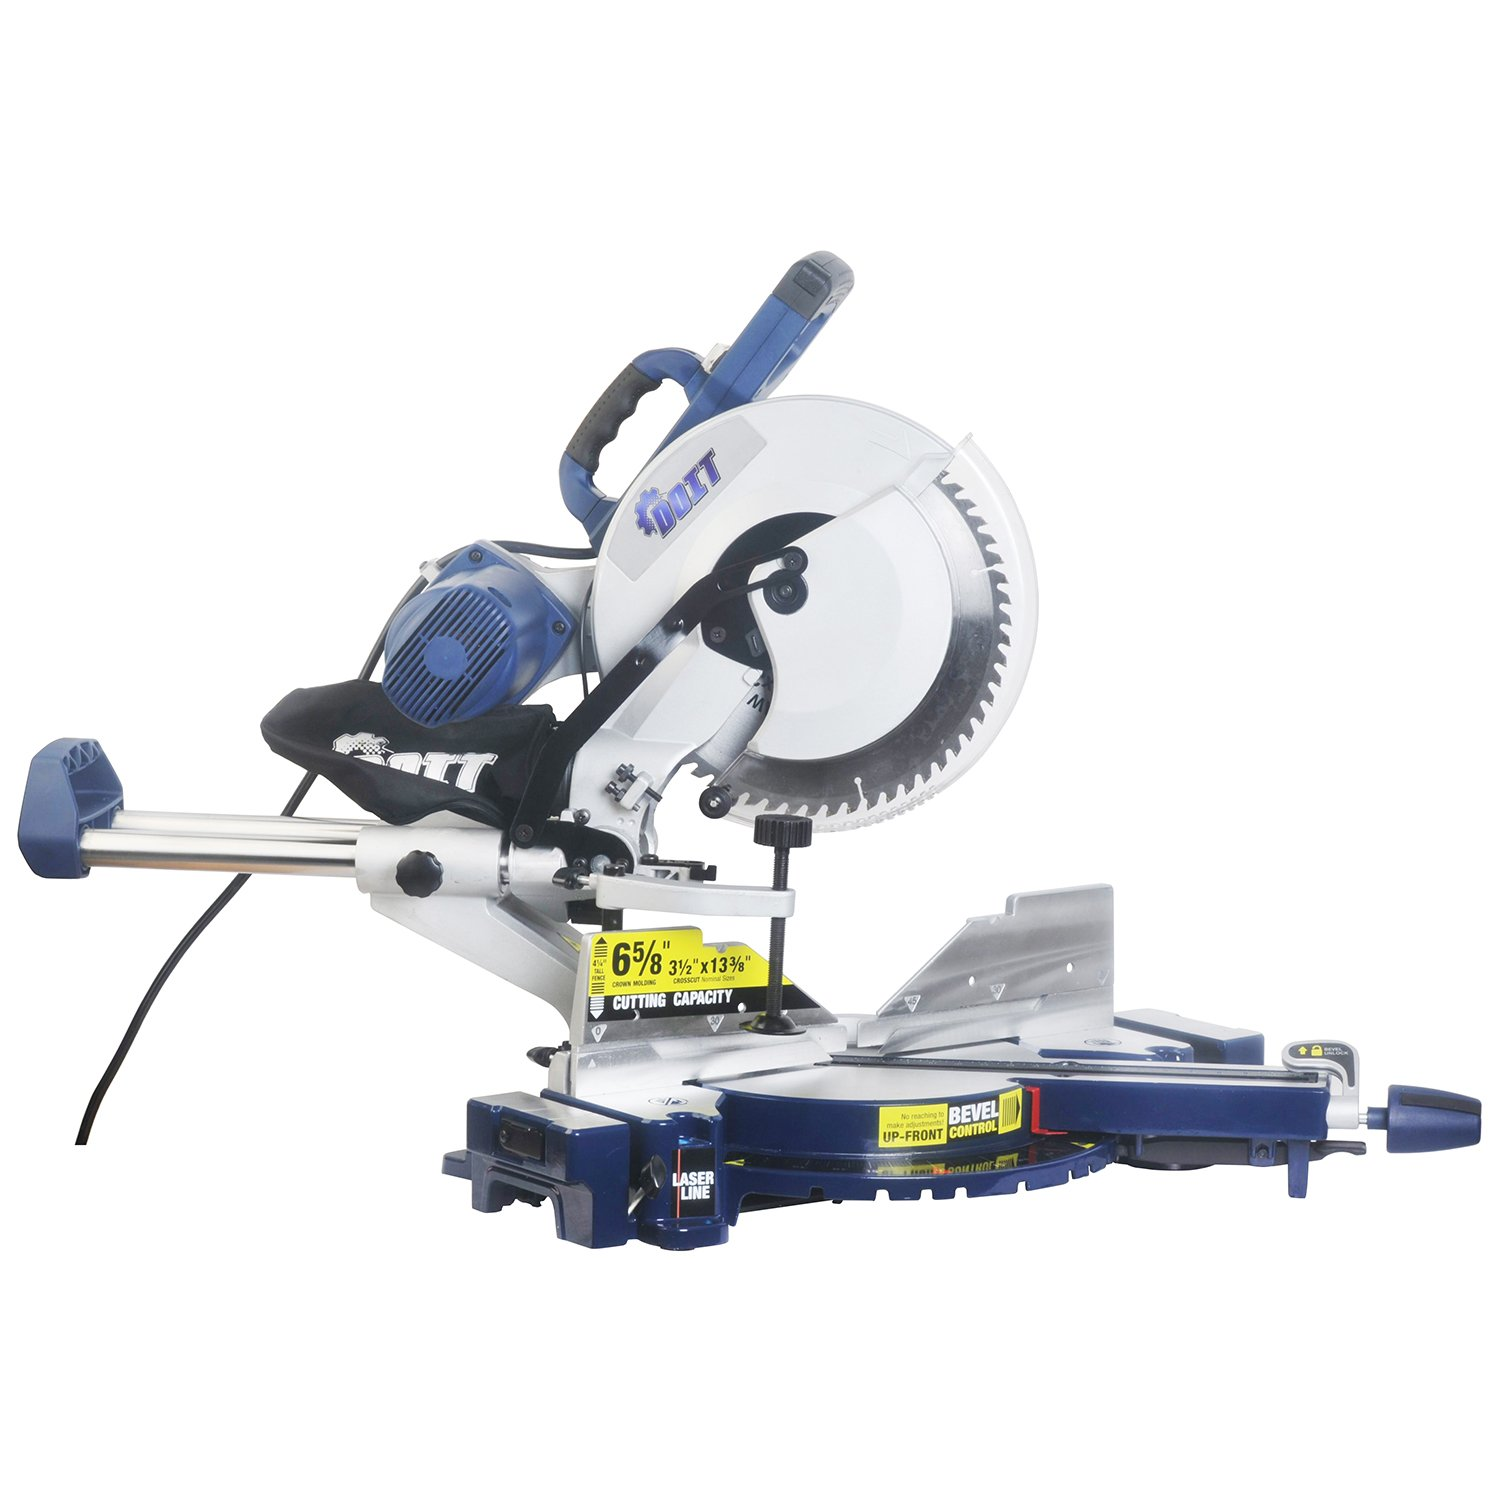 Wonlink 15 Amp 12'' Dual Bevel Sliding Compound Miter Saw with Laser and LED Work Light by Wonlink (Image #4)